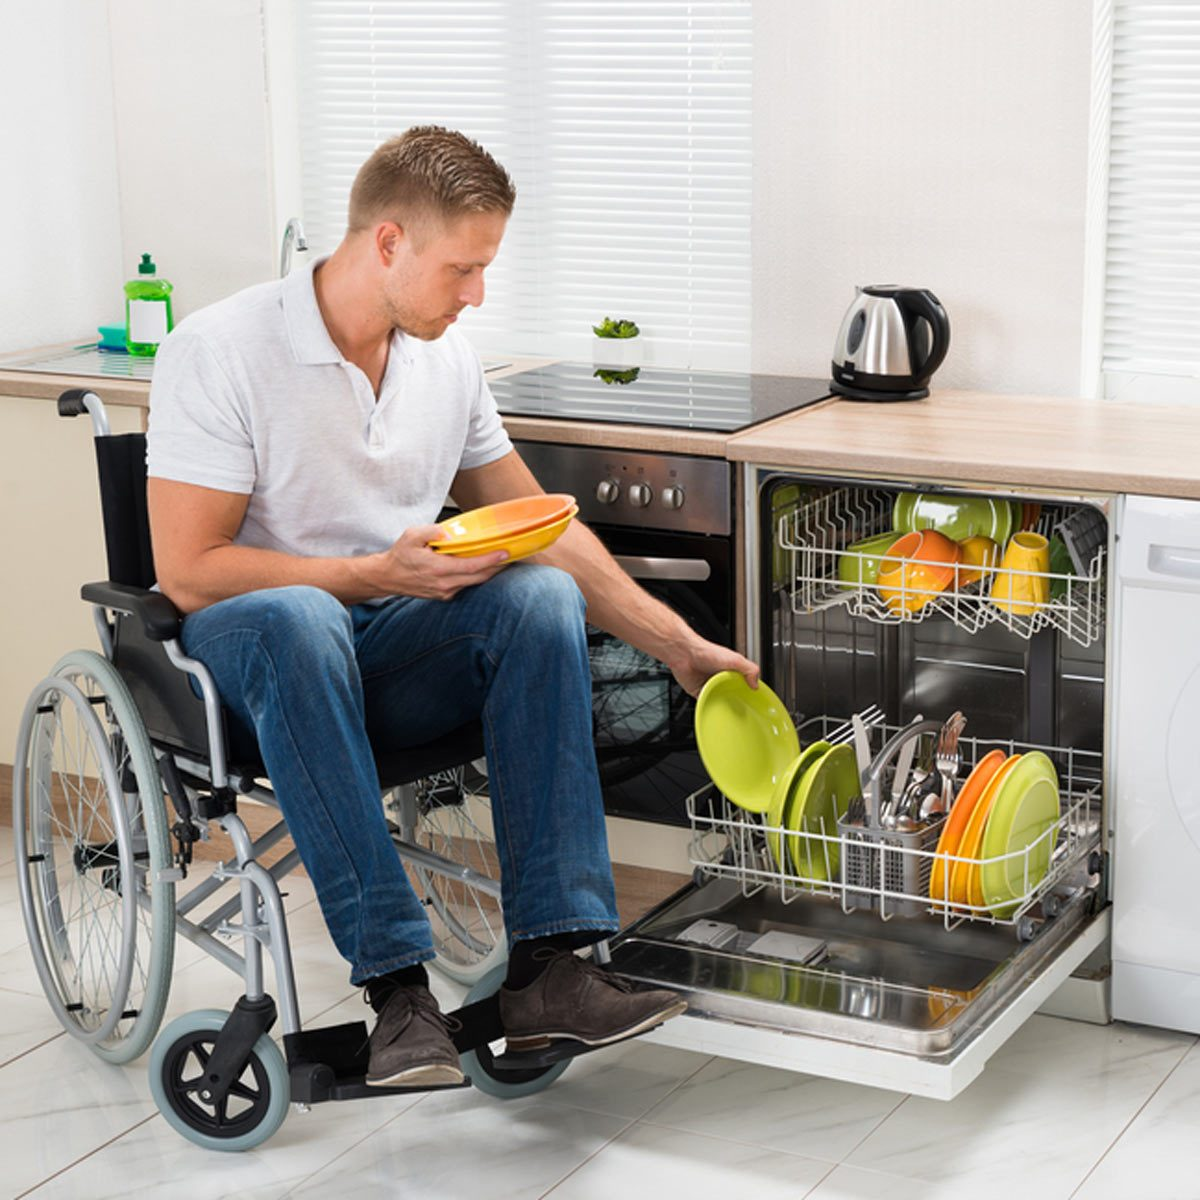 shutterstock_280796900 handicap accessible kitchen wheelchair